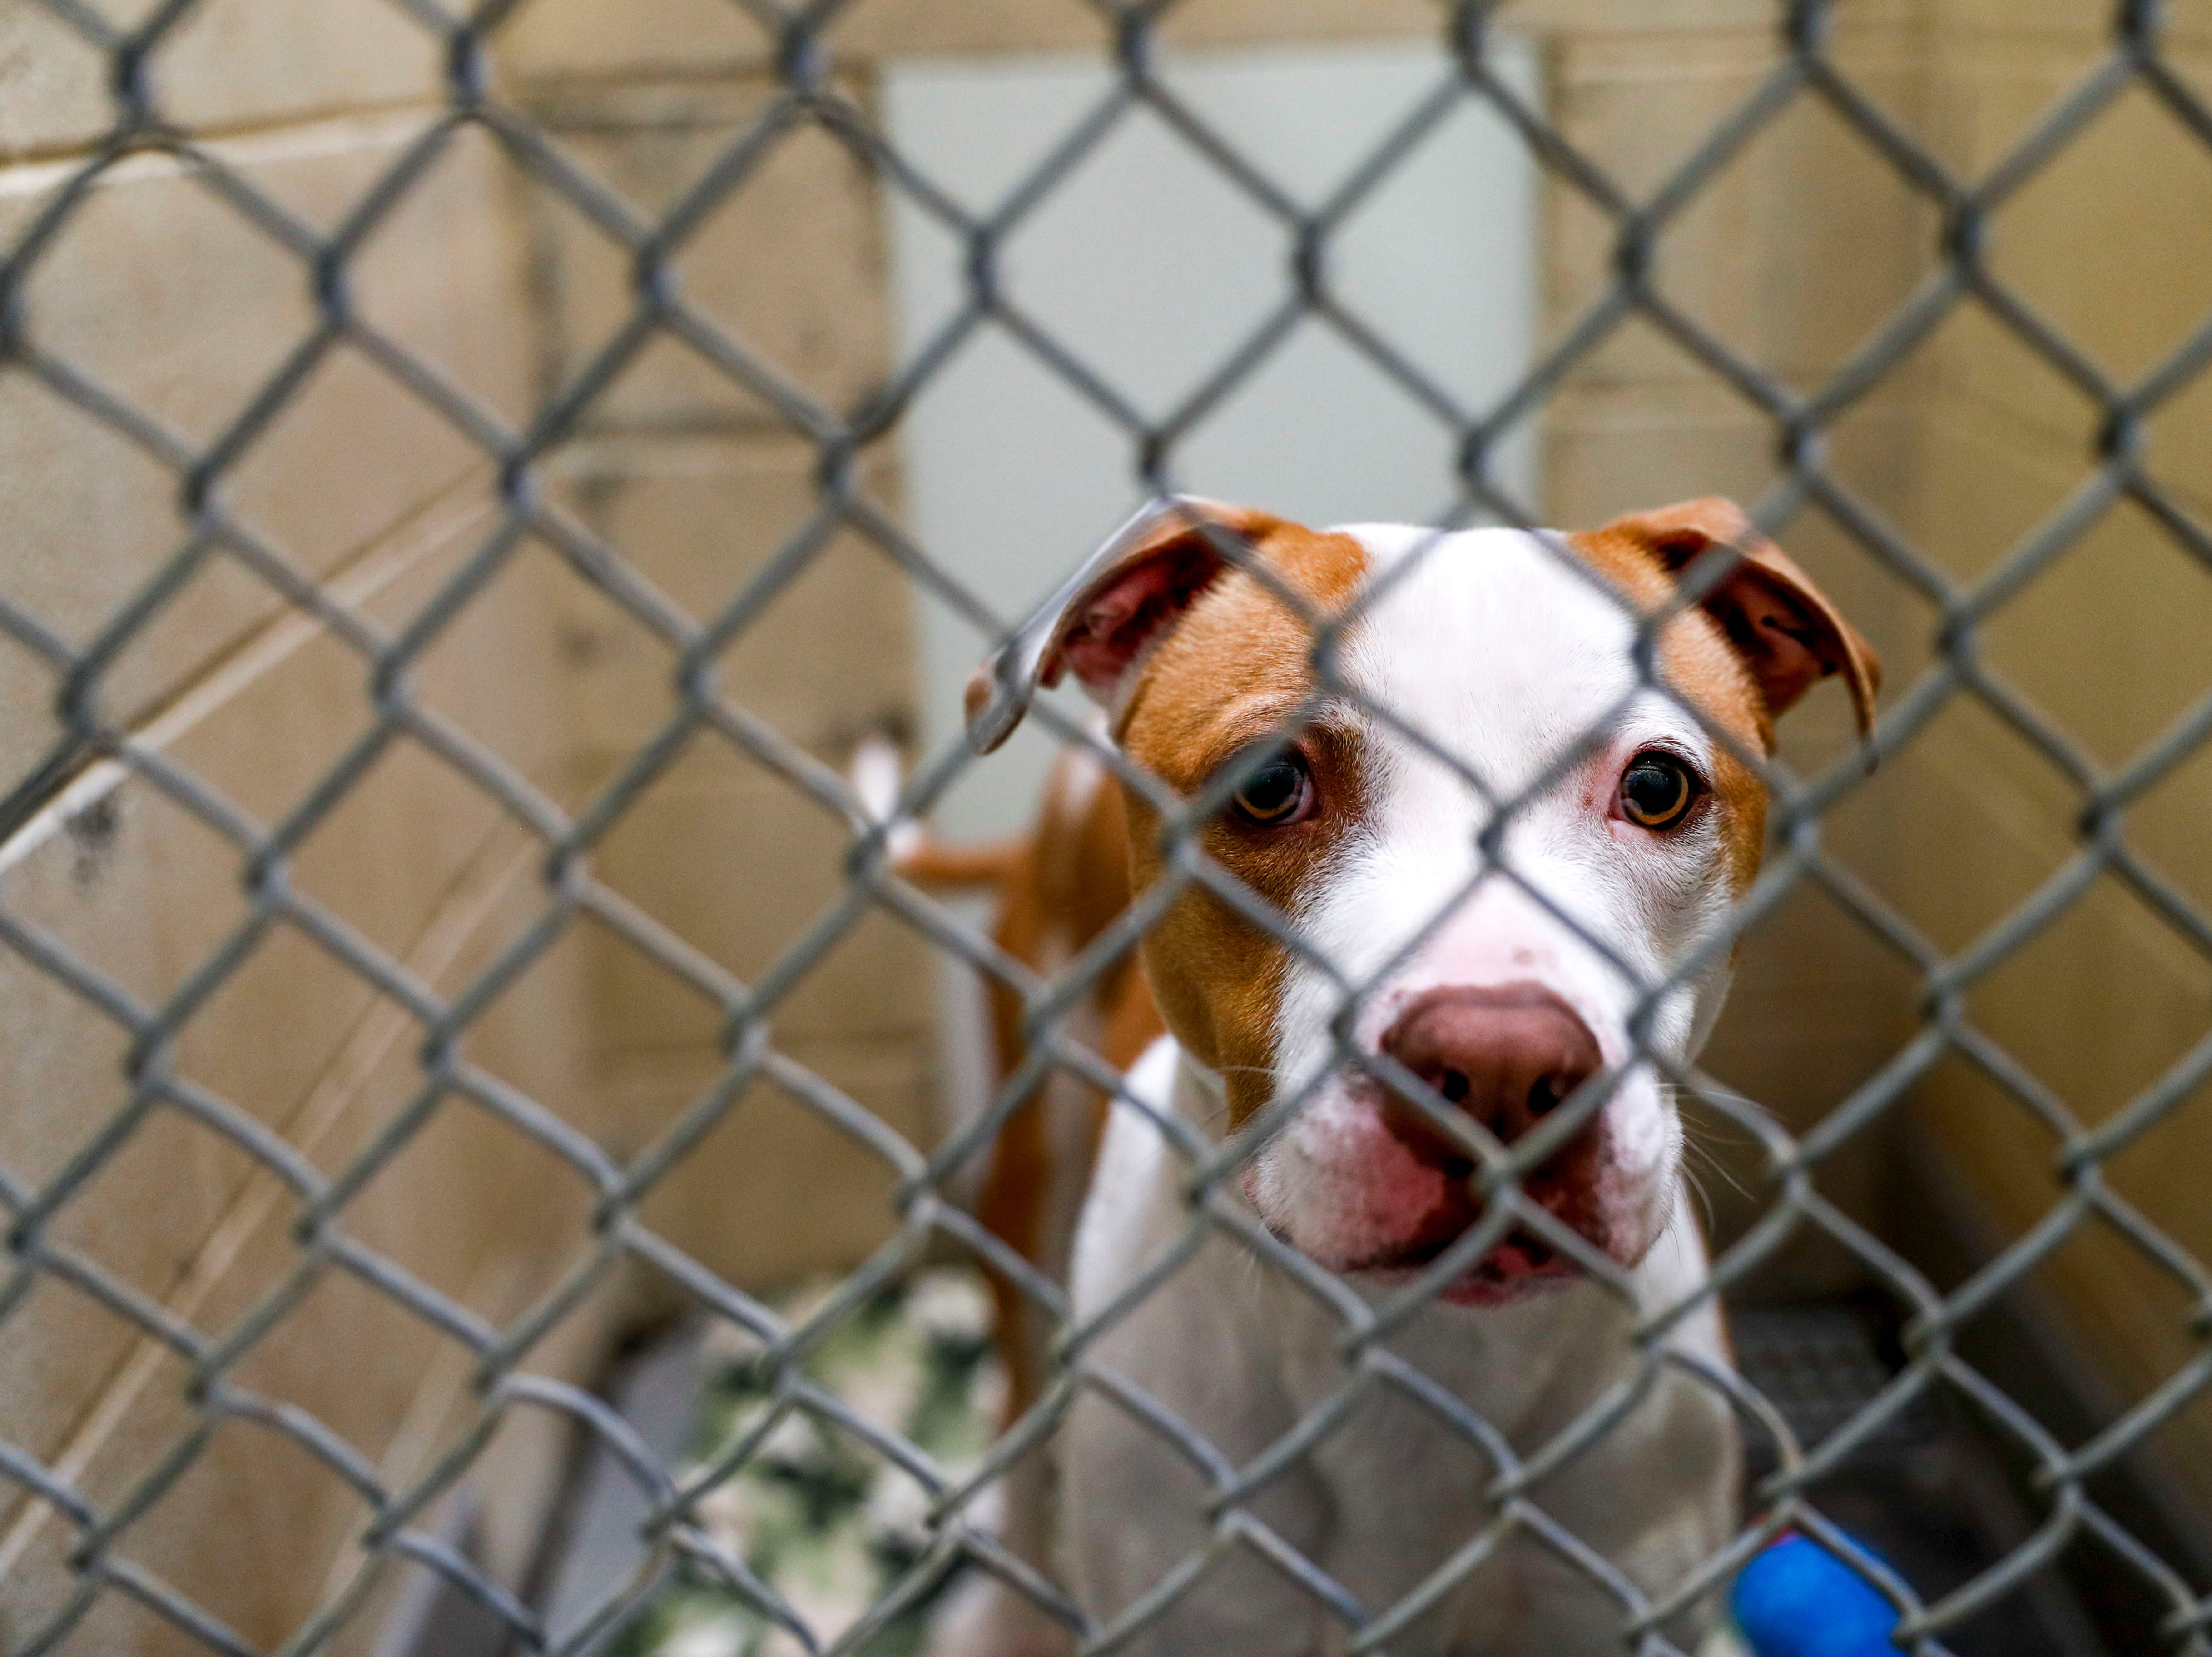 Peter Pan, a pit bull terrier, gazes out from his kennel at Montgomery County Animal Care and Control in Clarksville, Tenn., on Wednesday, March 13, 2019.